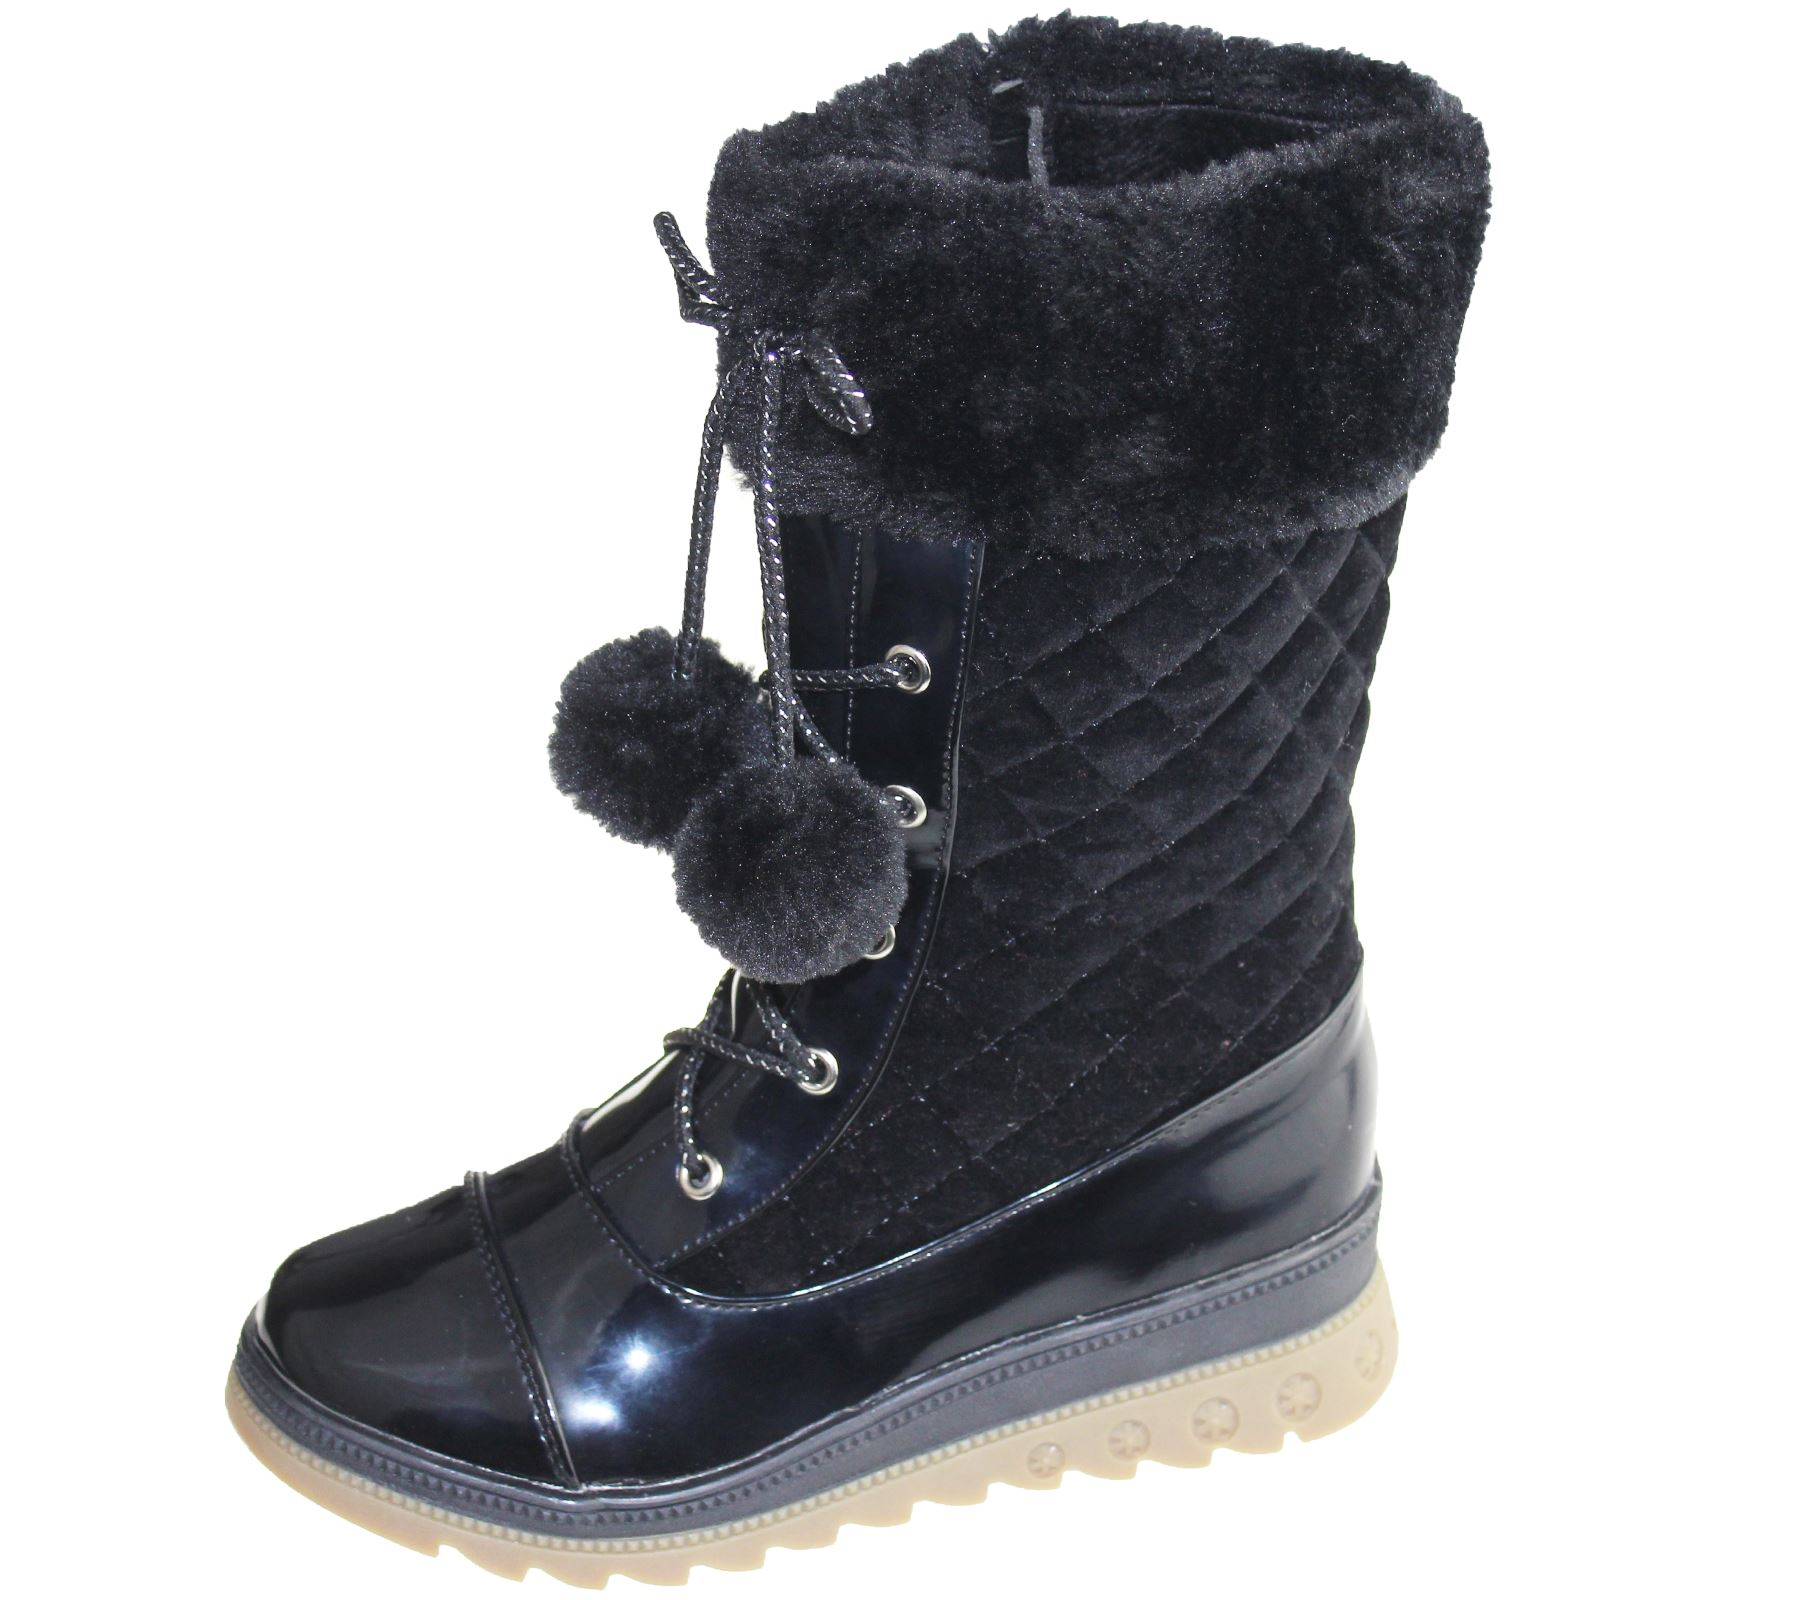 Girls-Warm-Lined-Boots-Quilted-Winter-Warm-Christmas-